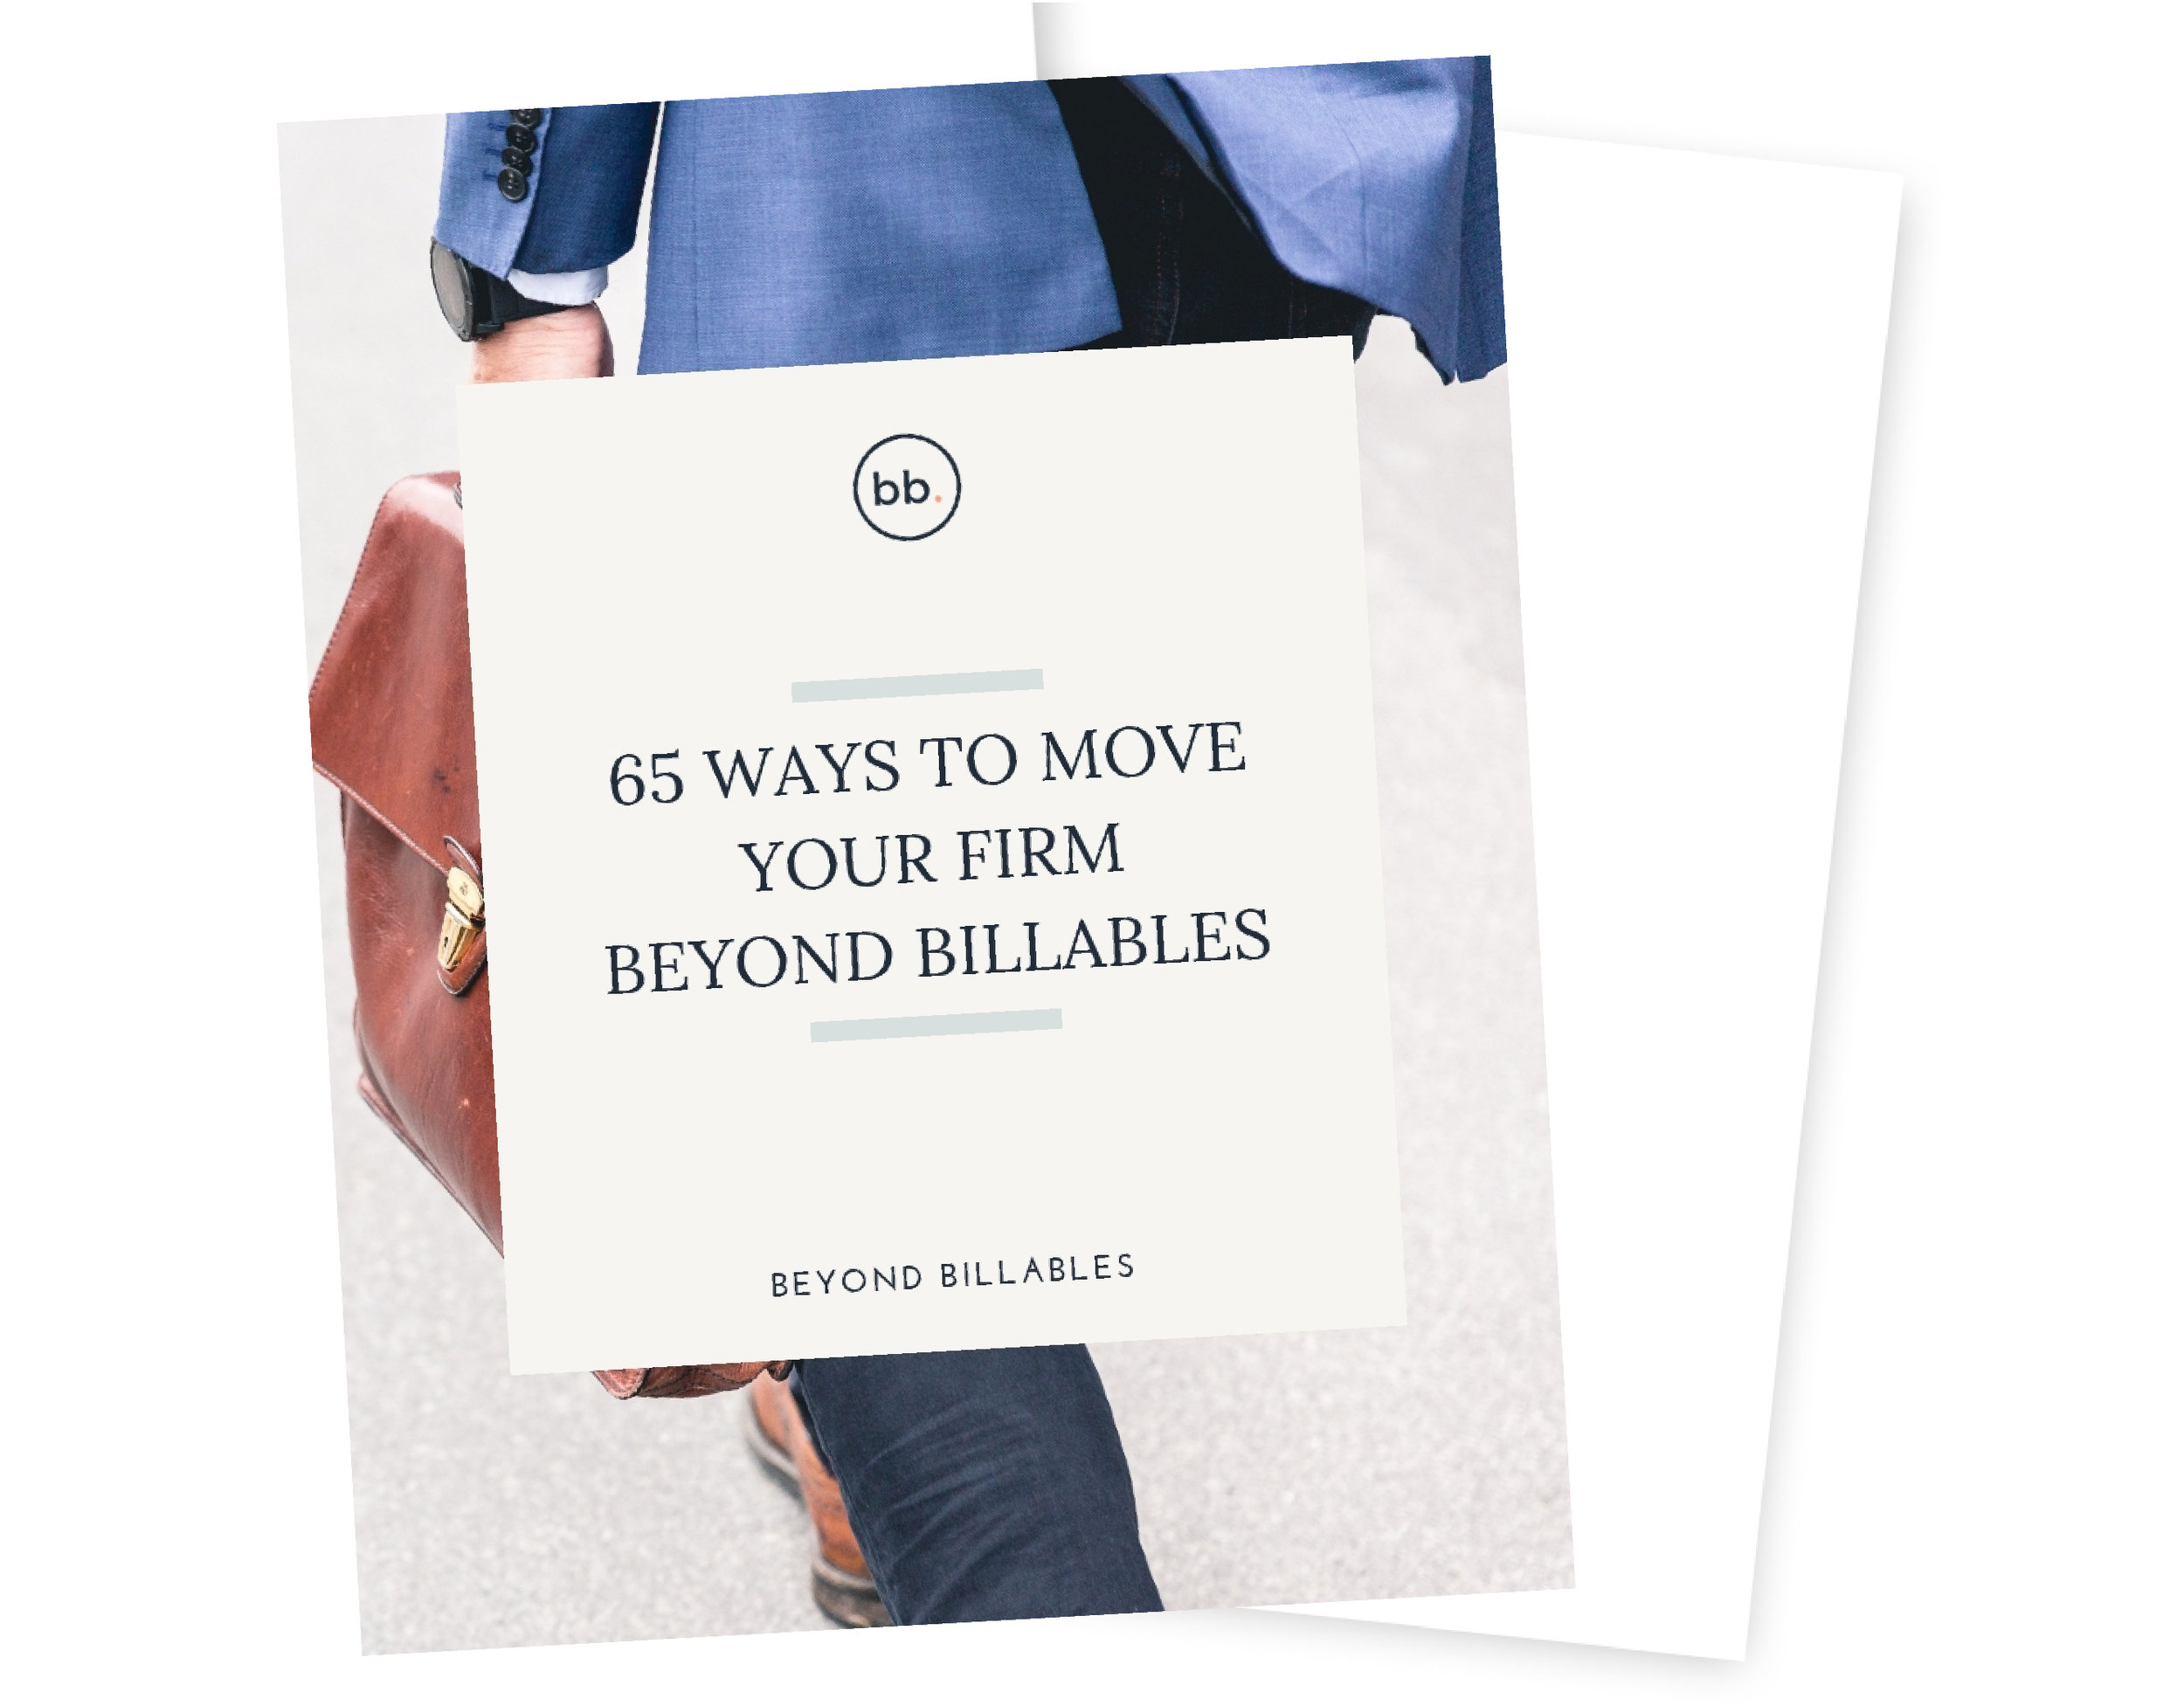 65 ways to move your firm